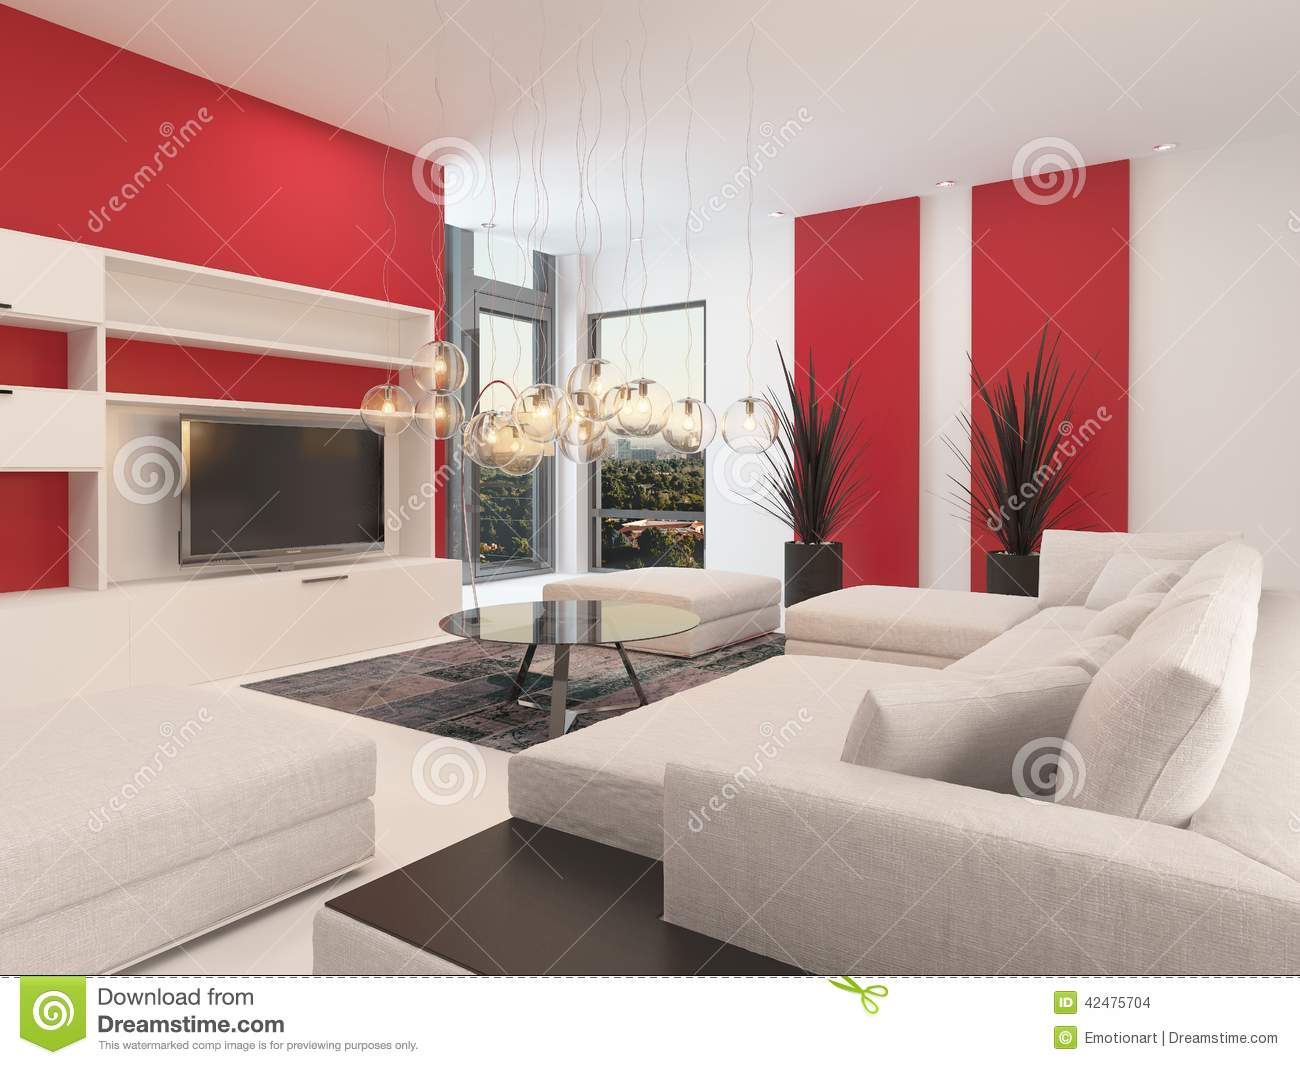 Modern white living room with red accents stock for Modern living room red